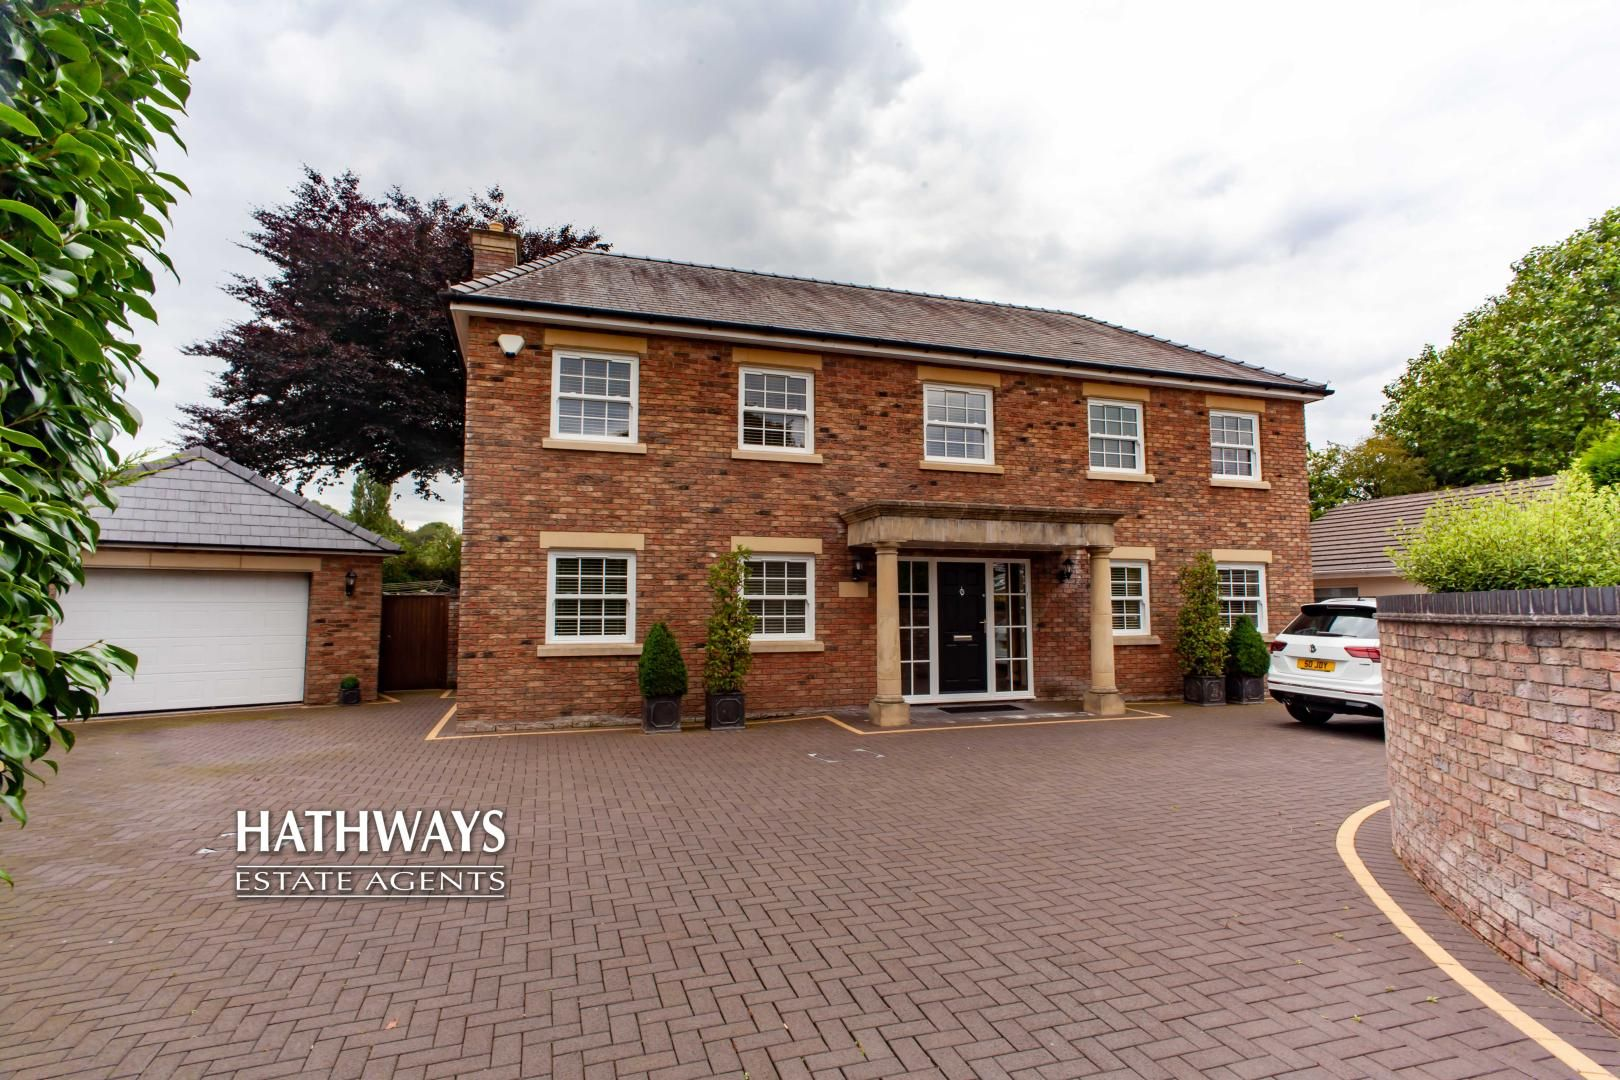 4 bed house for sale in Caerleon Road, NP18